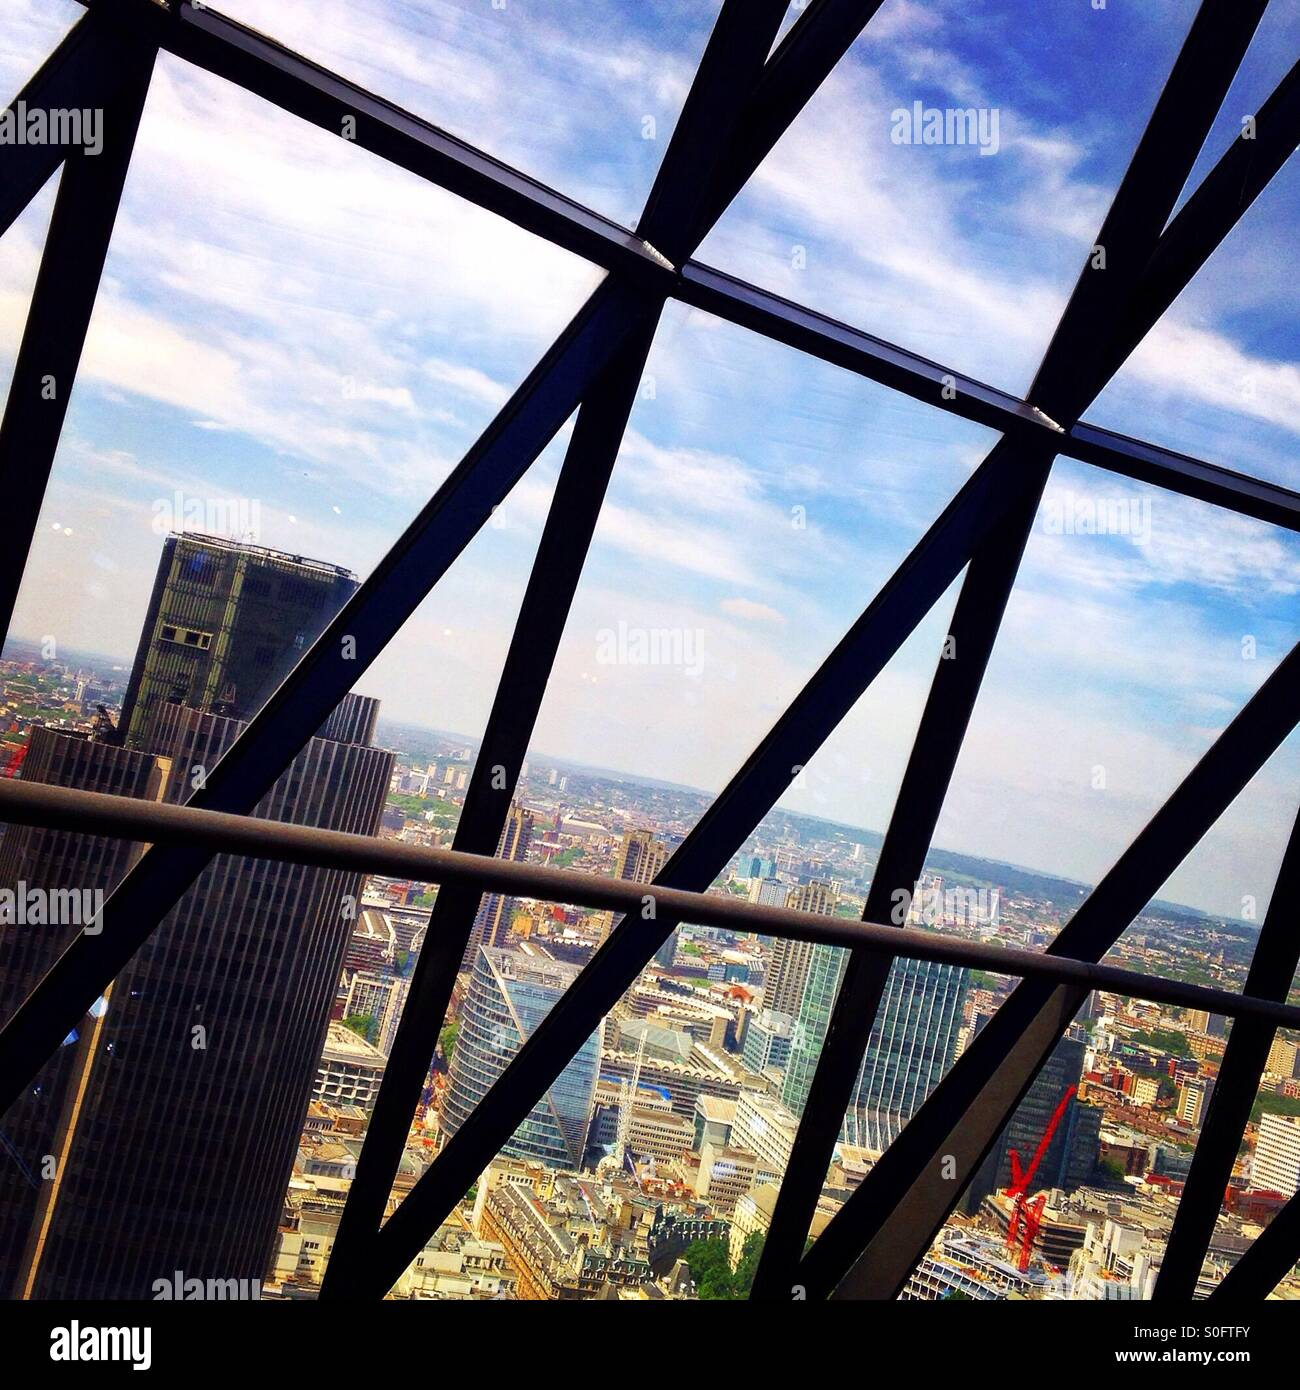 The view from the Gherkin - Stock Image